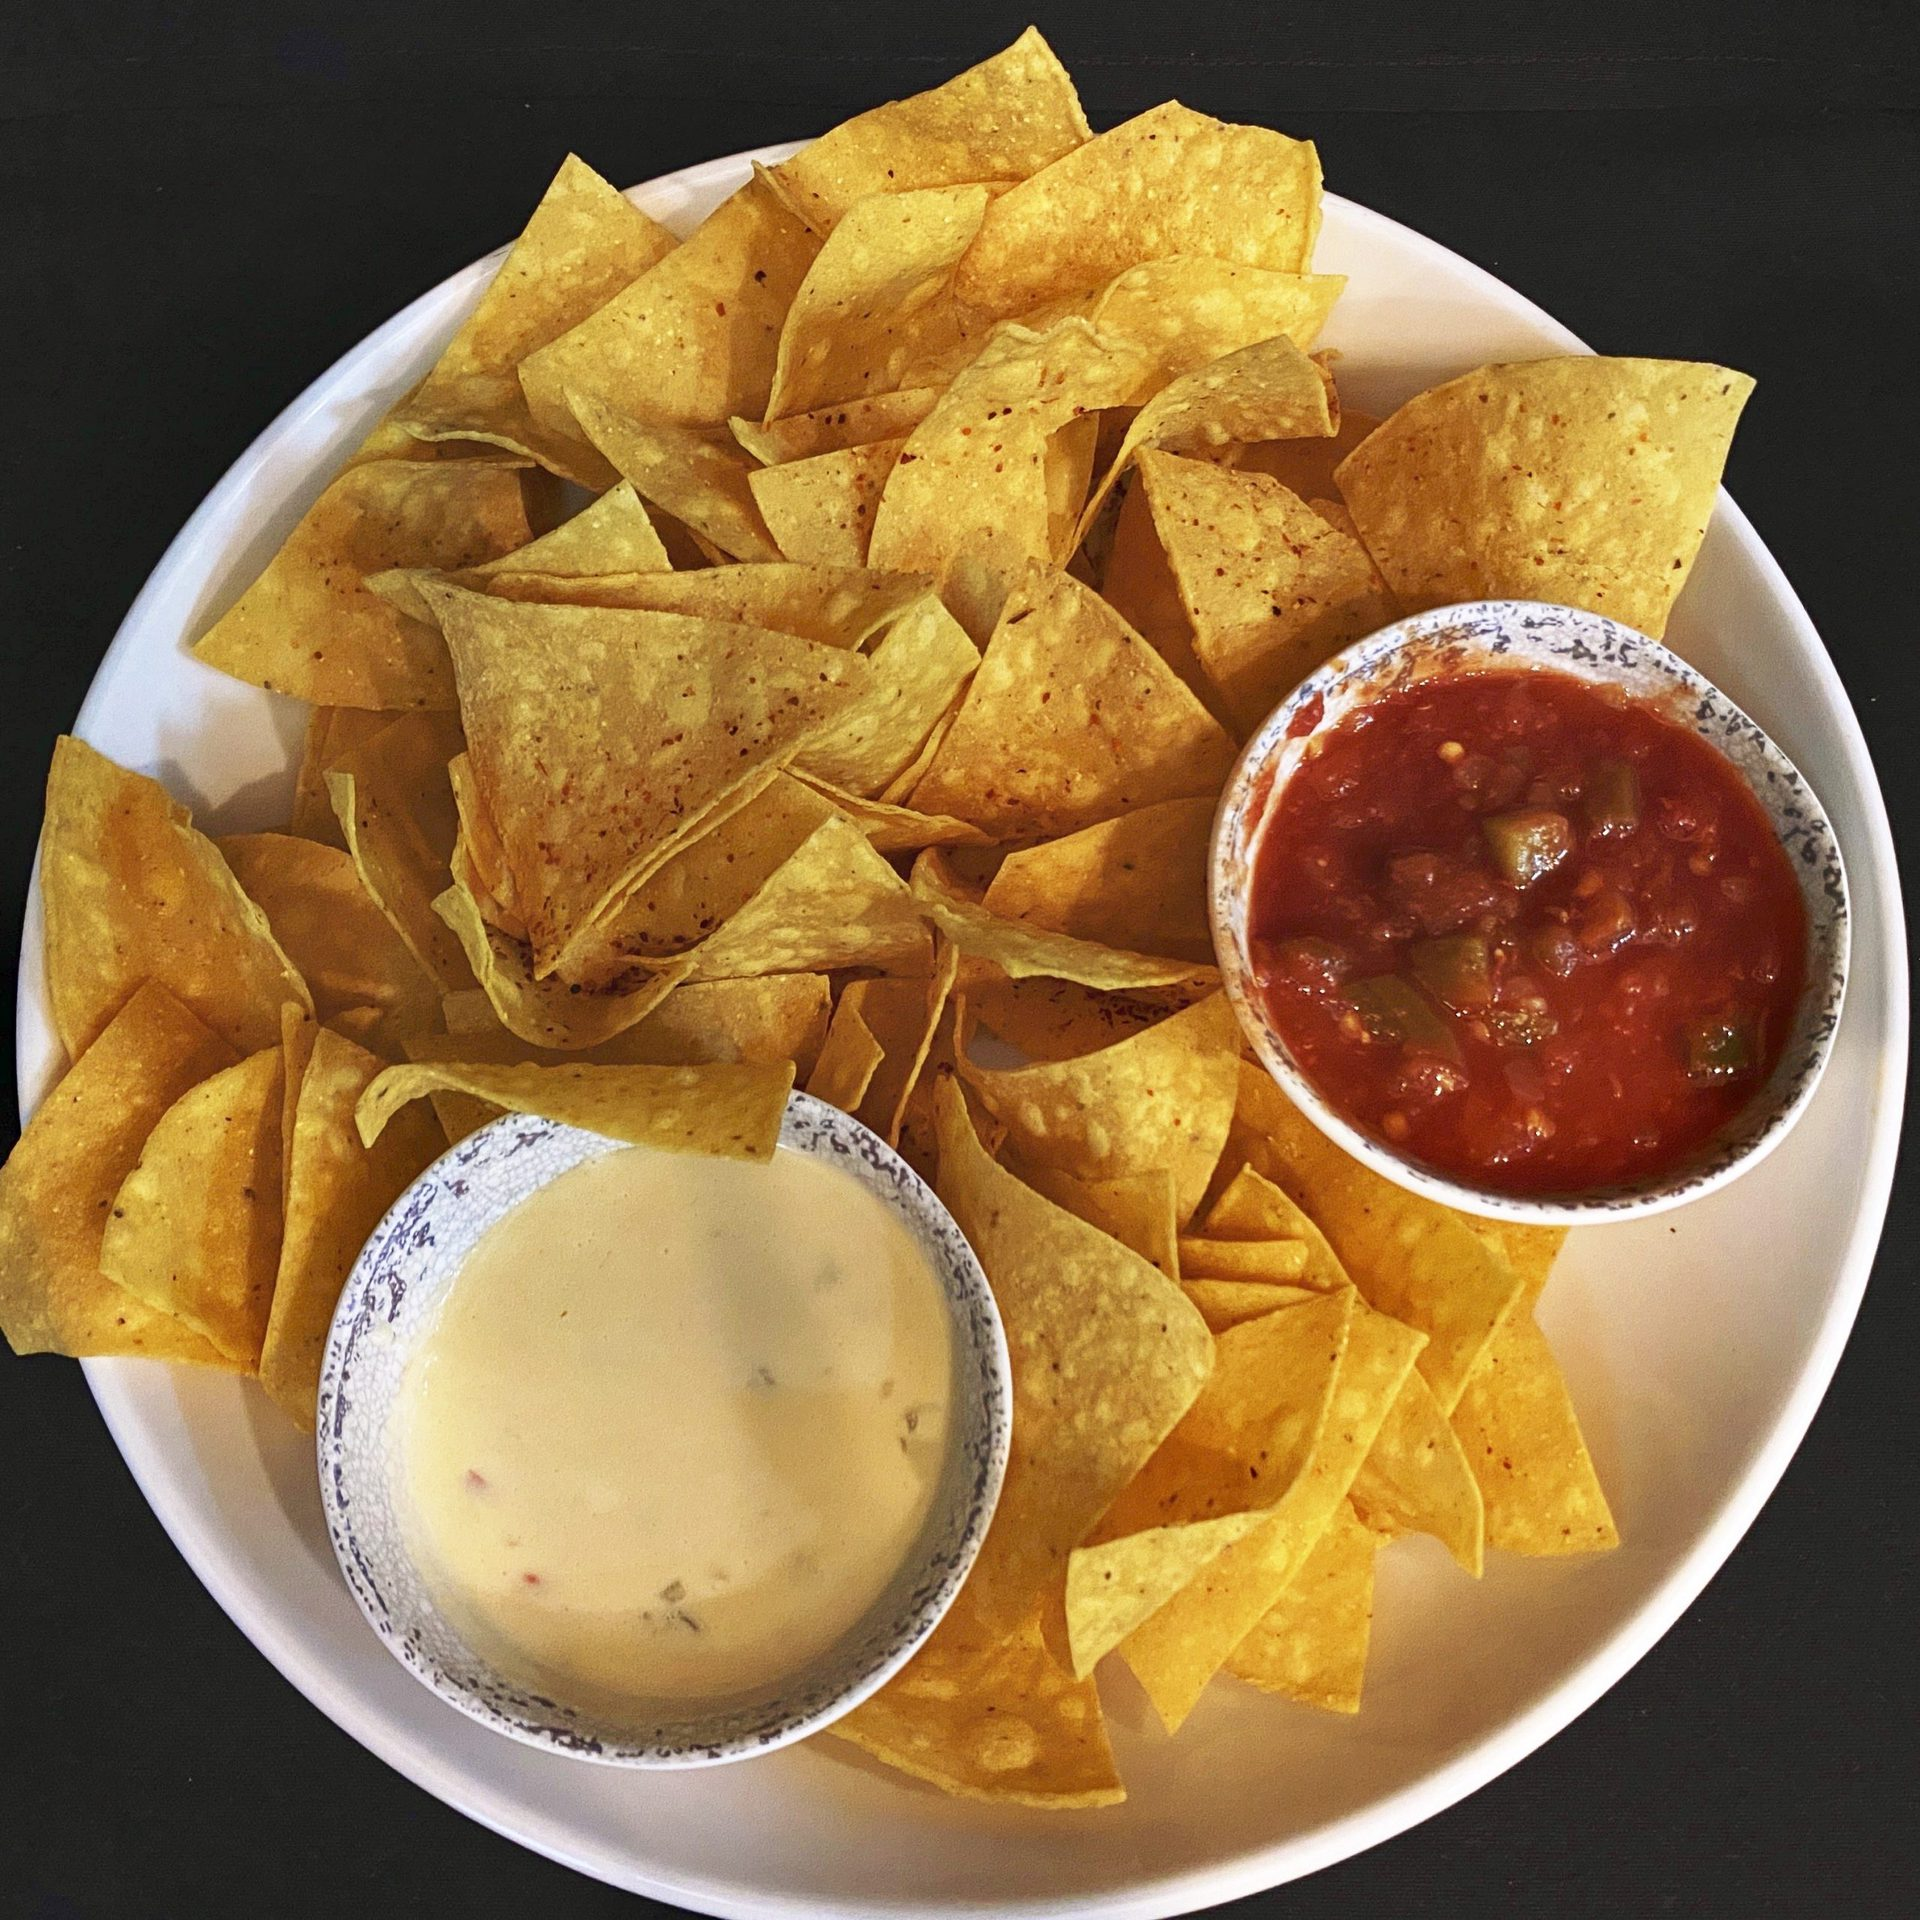 Chips and dip on a plate.